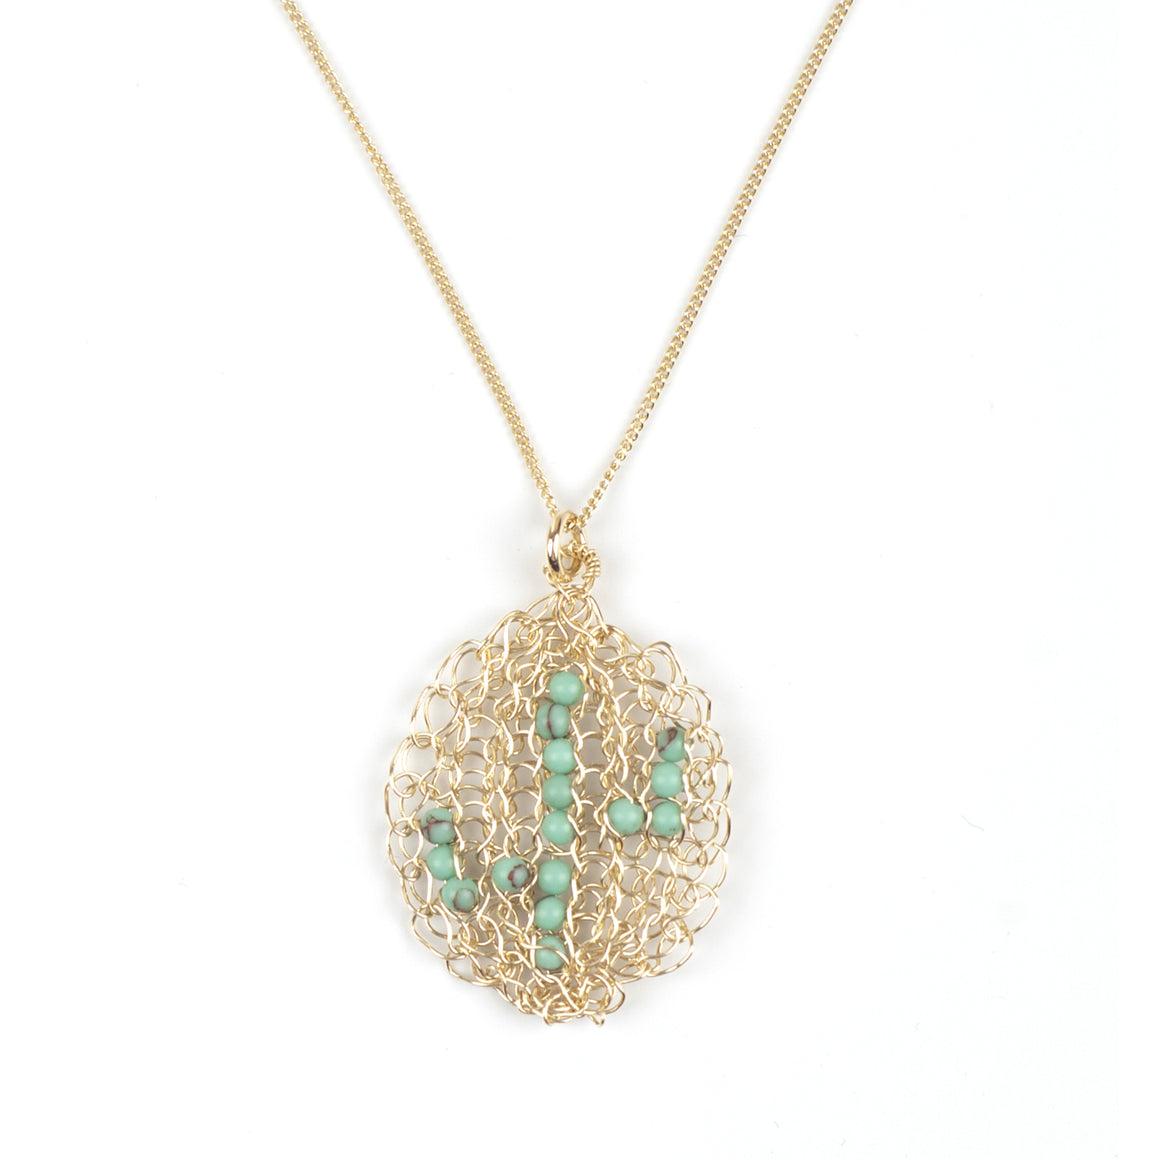 Cactus necklace - gold and turquoise - Yooladesign